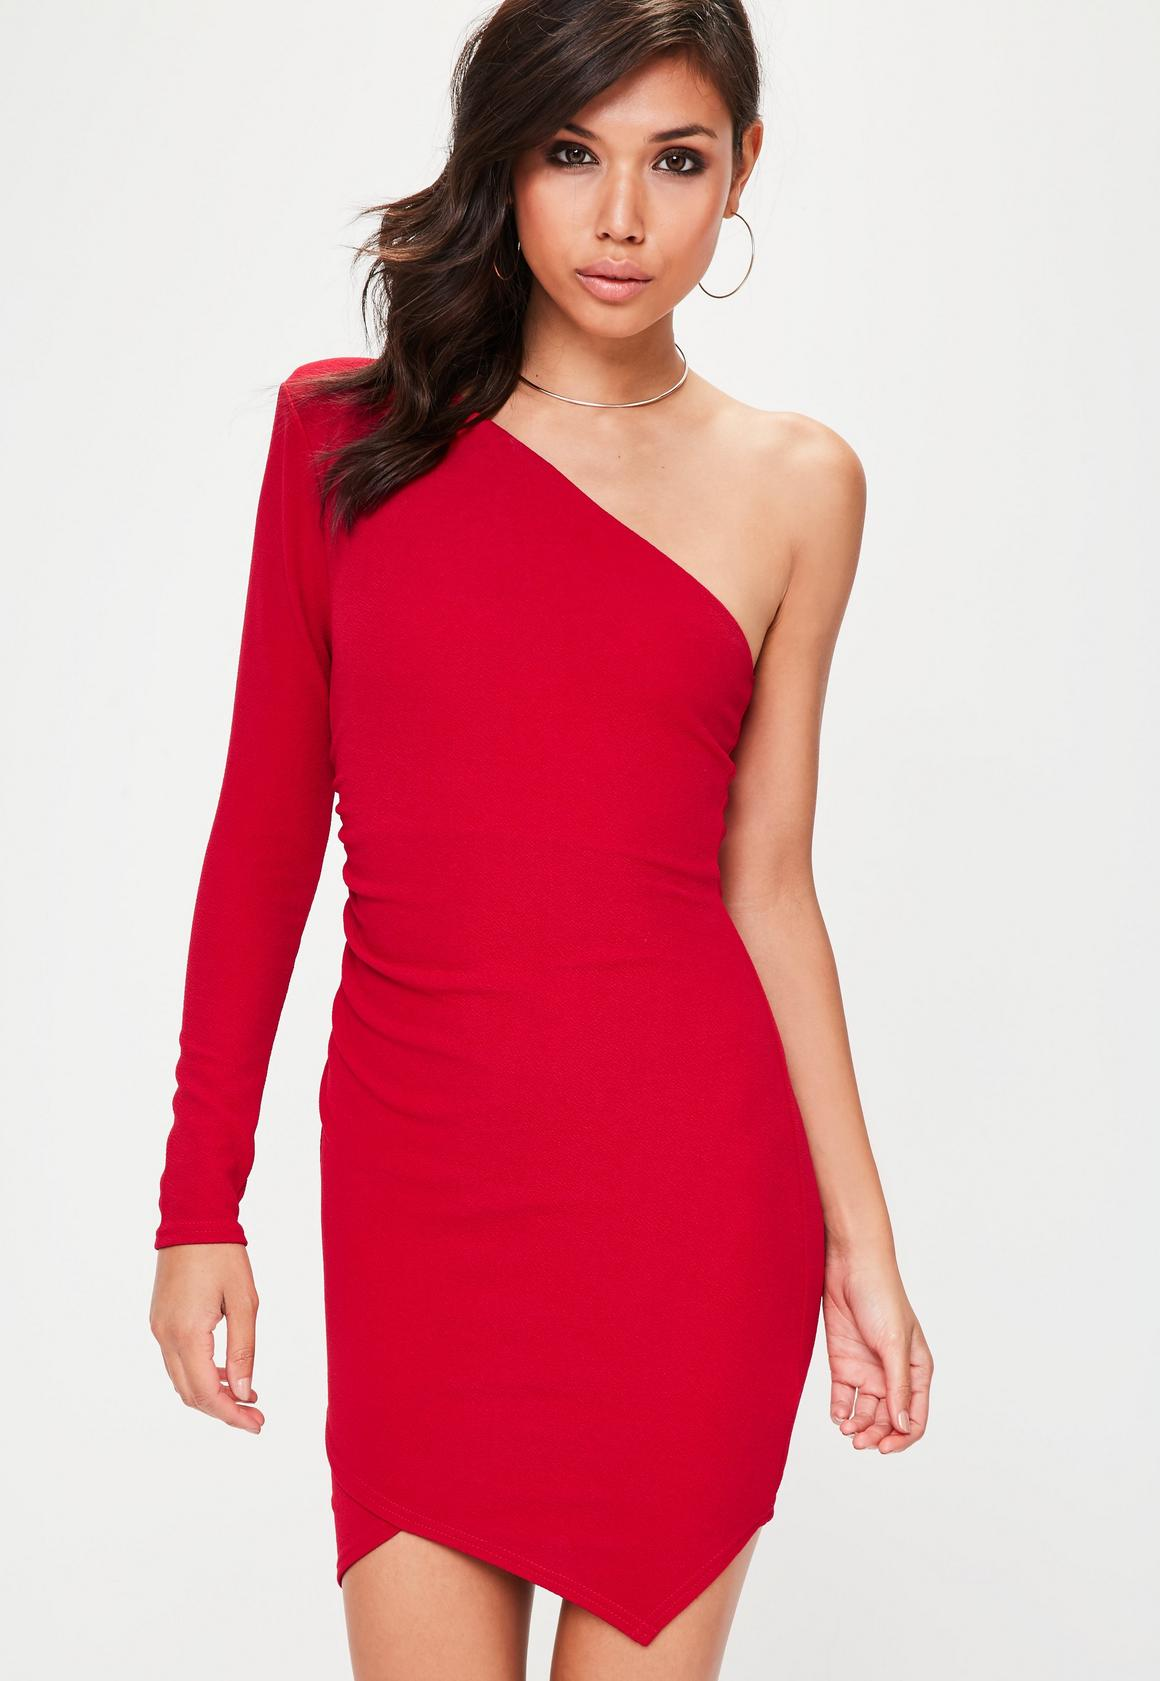 Red One Shoulder Exaggerated Ruched Bodycon Dress | Missguided